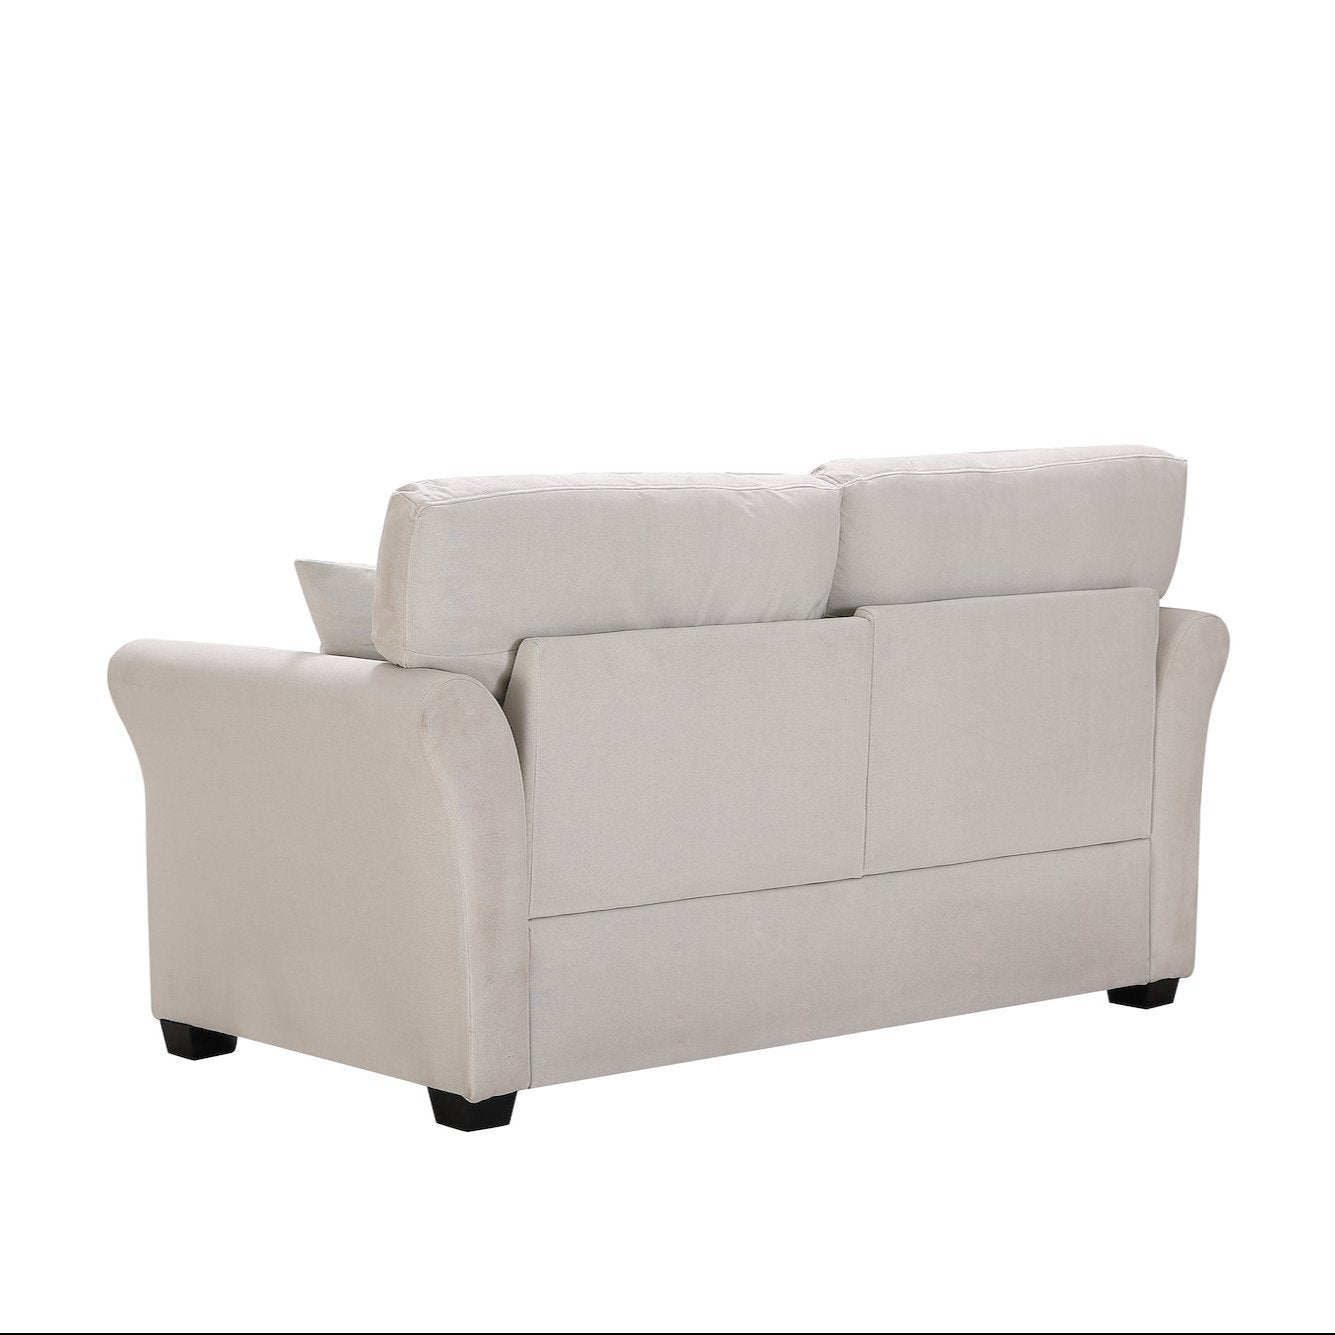 Foster Loveseat with 2 pillows